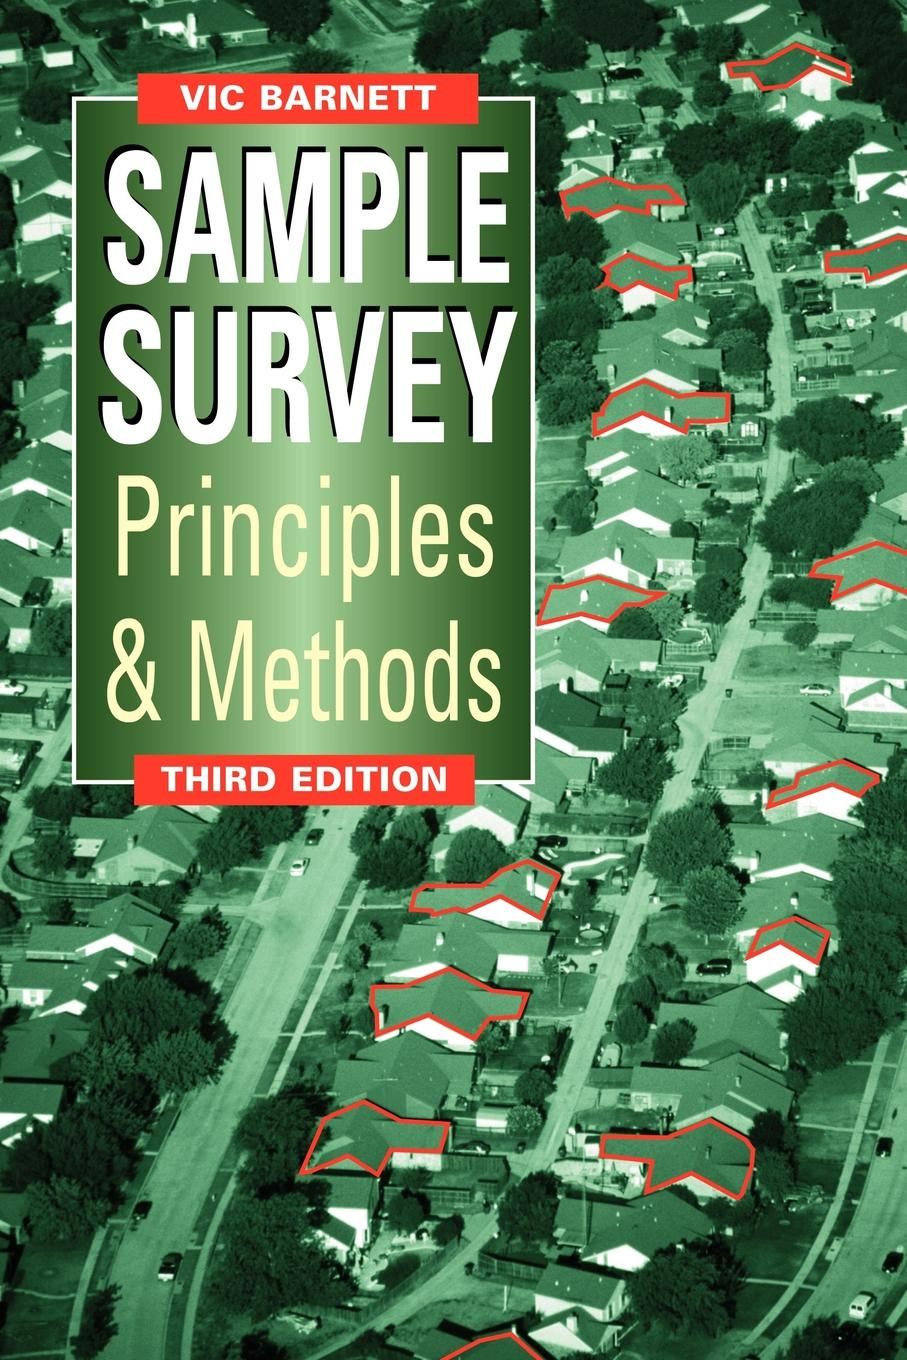 Barnett Sample Survey Principles and Methods 3e sample图4265436